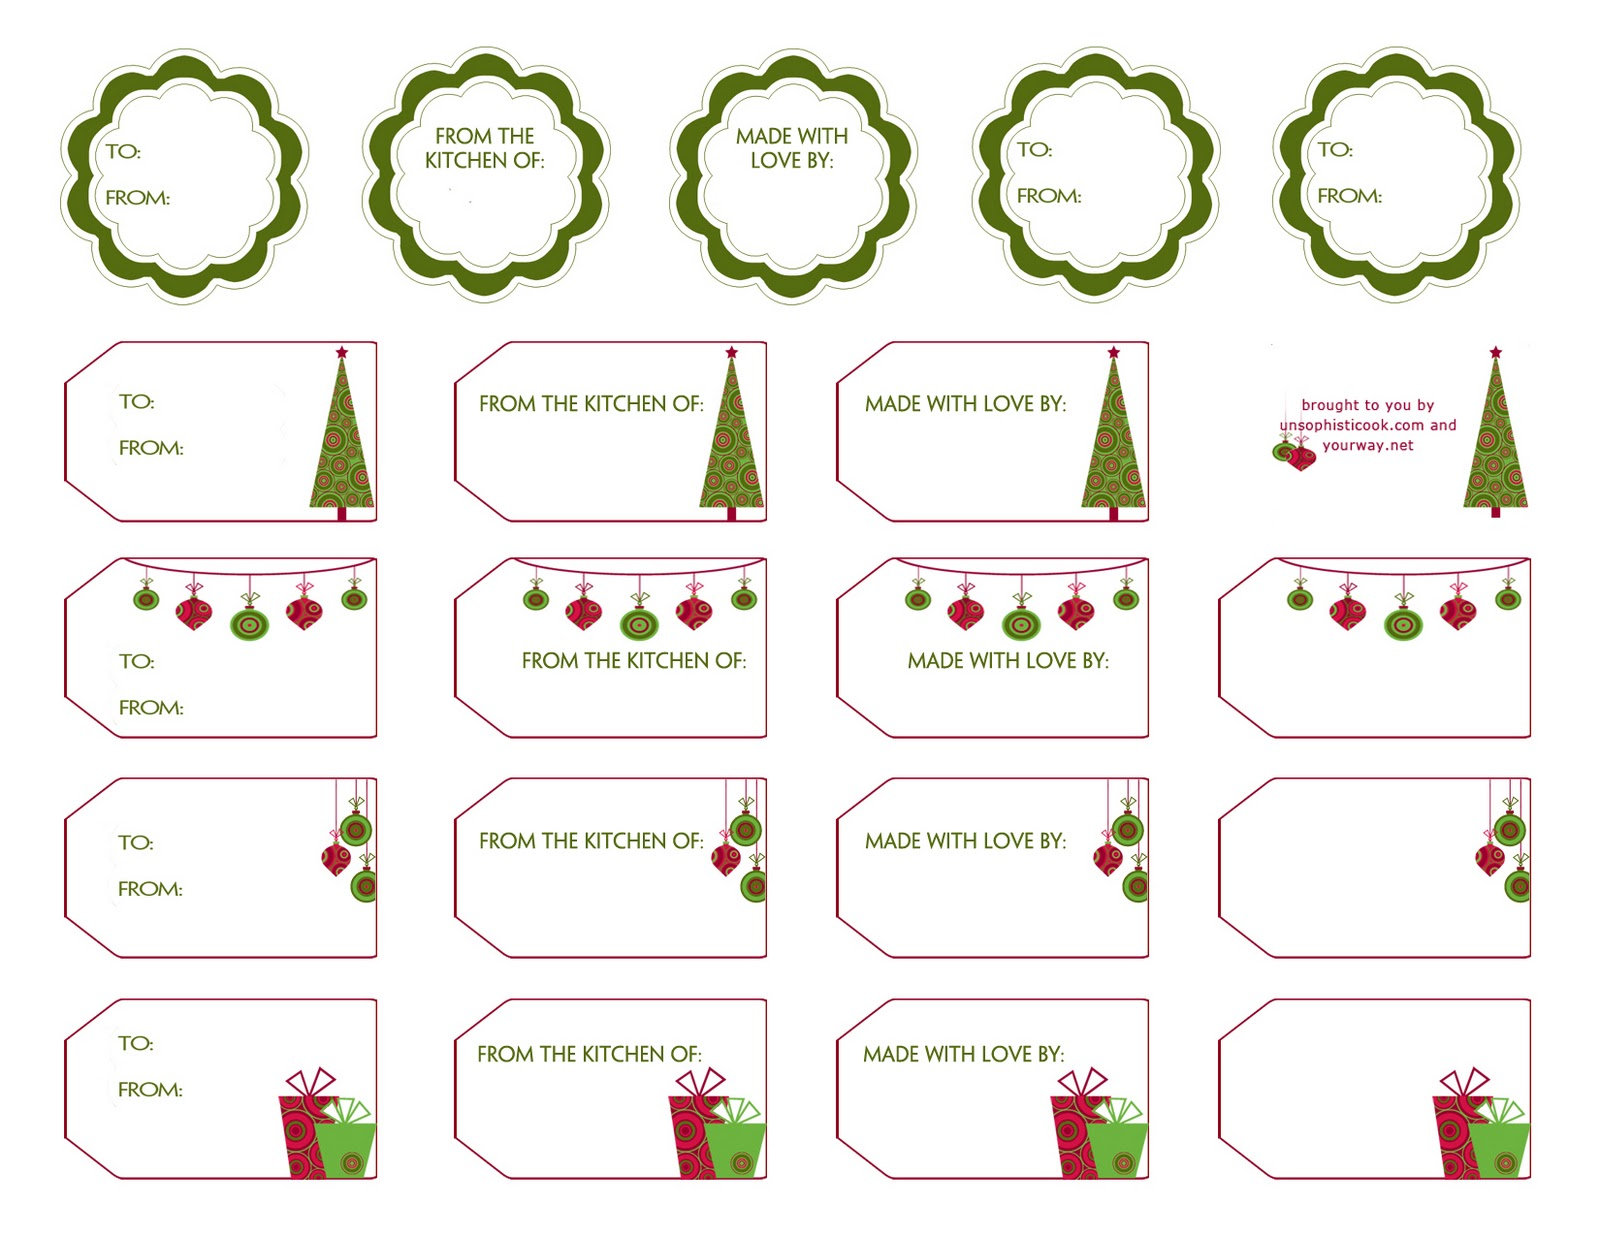 photo relating to Printable Gift Tags Avery identified as Popularity Tag Template Avery. entertaining extravagant celebration reputation tags labels